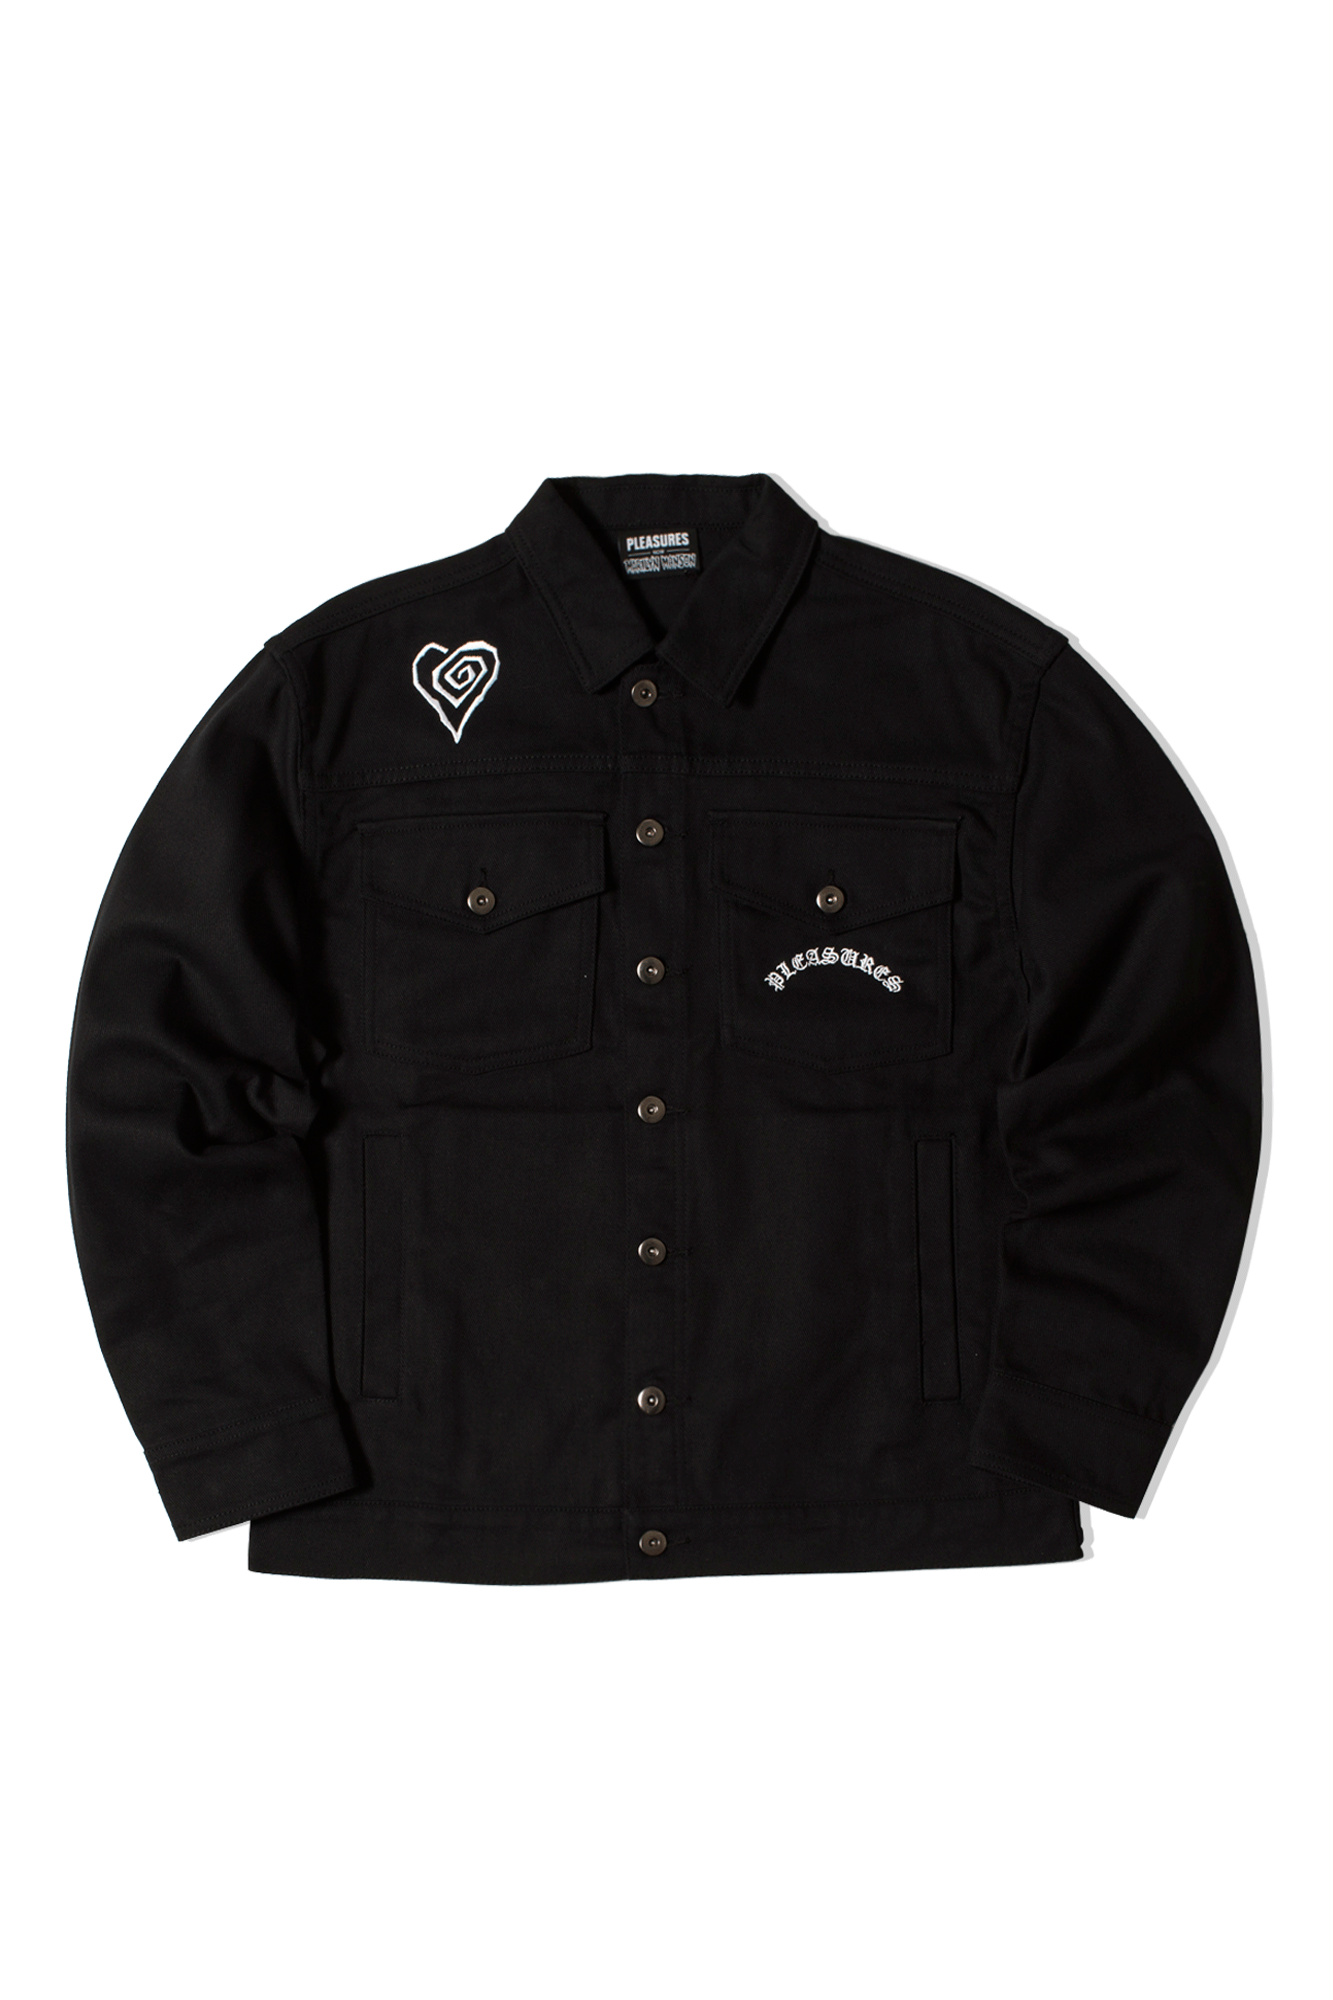 Trucker Jacket x Marilyn Manson Nero